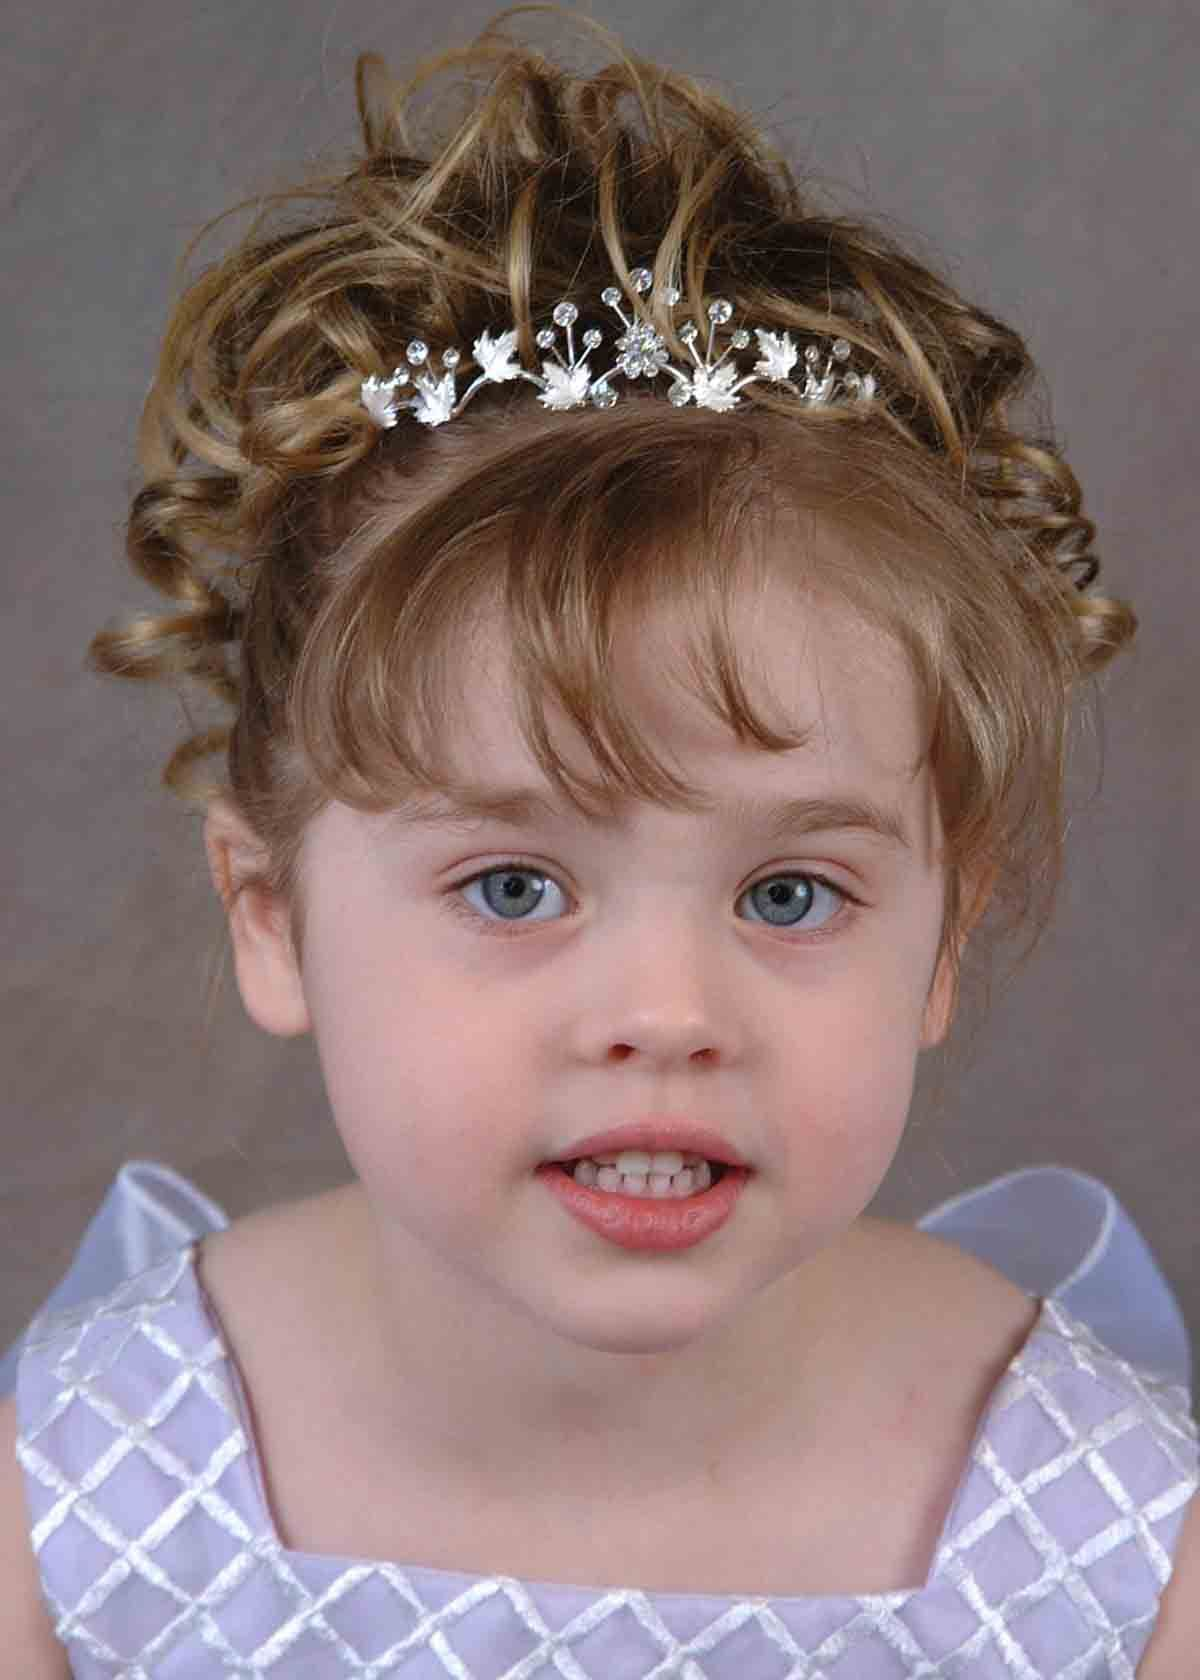 50 gorgeous kids hair accessories and hairstyles | hair